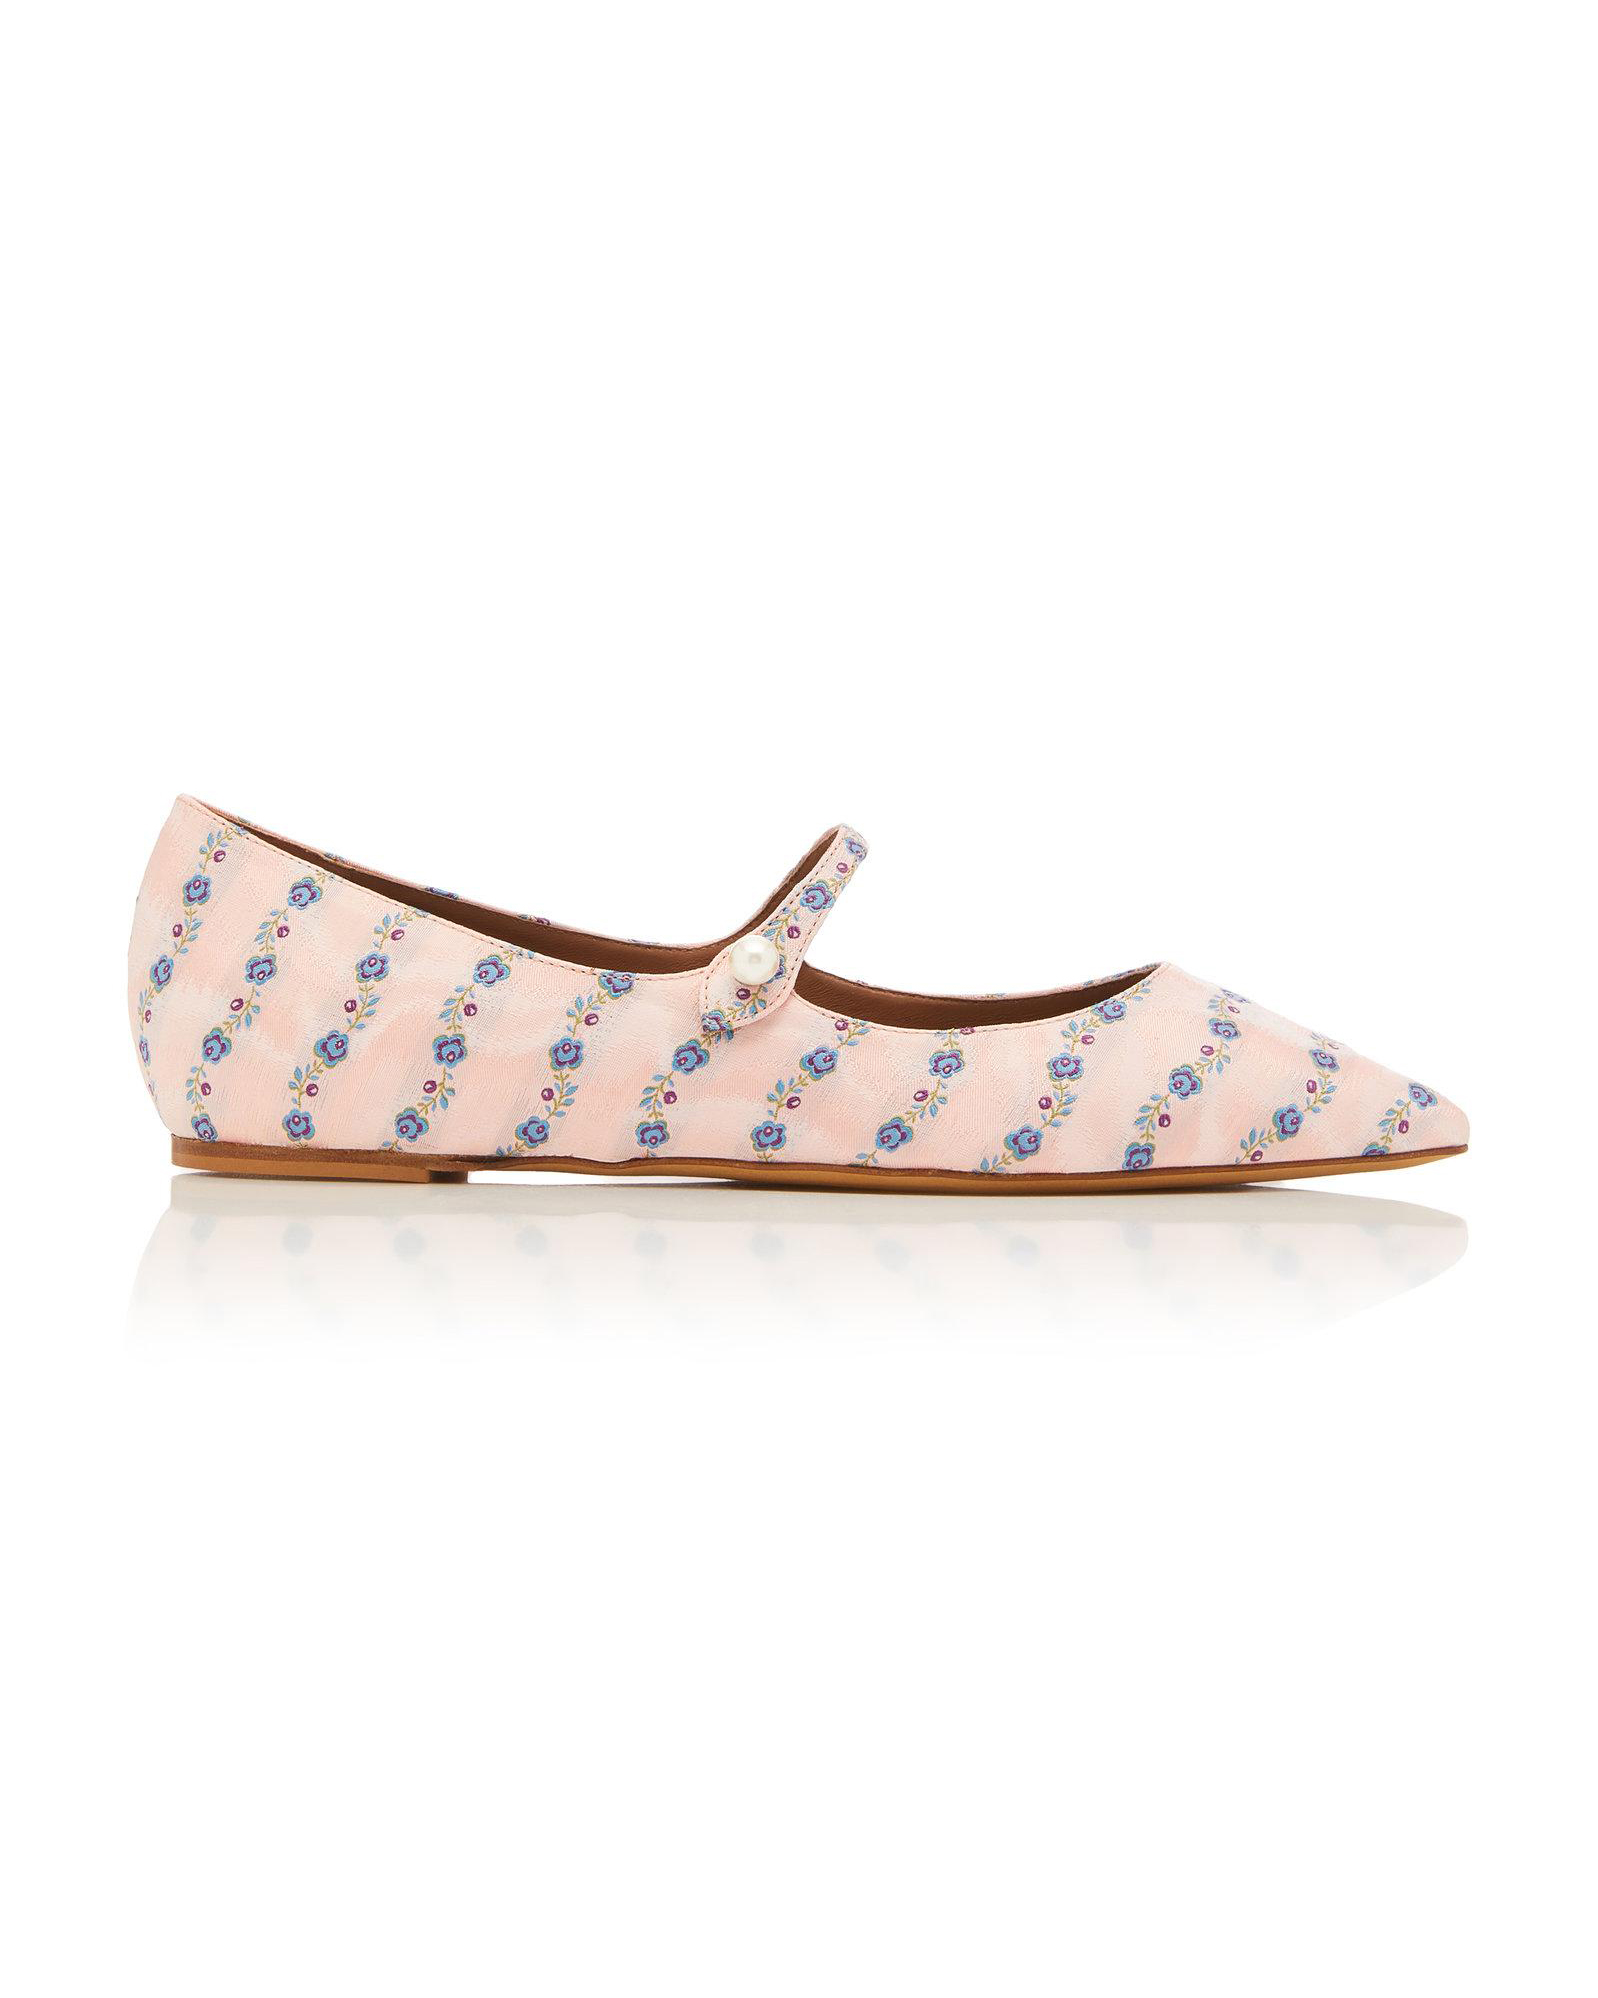 outdoor wedding shoes floral-patterned pointed toe flats